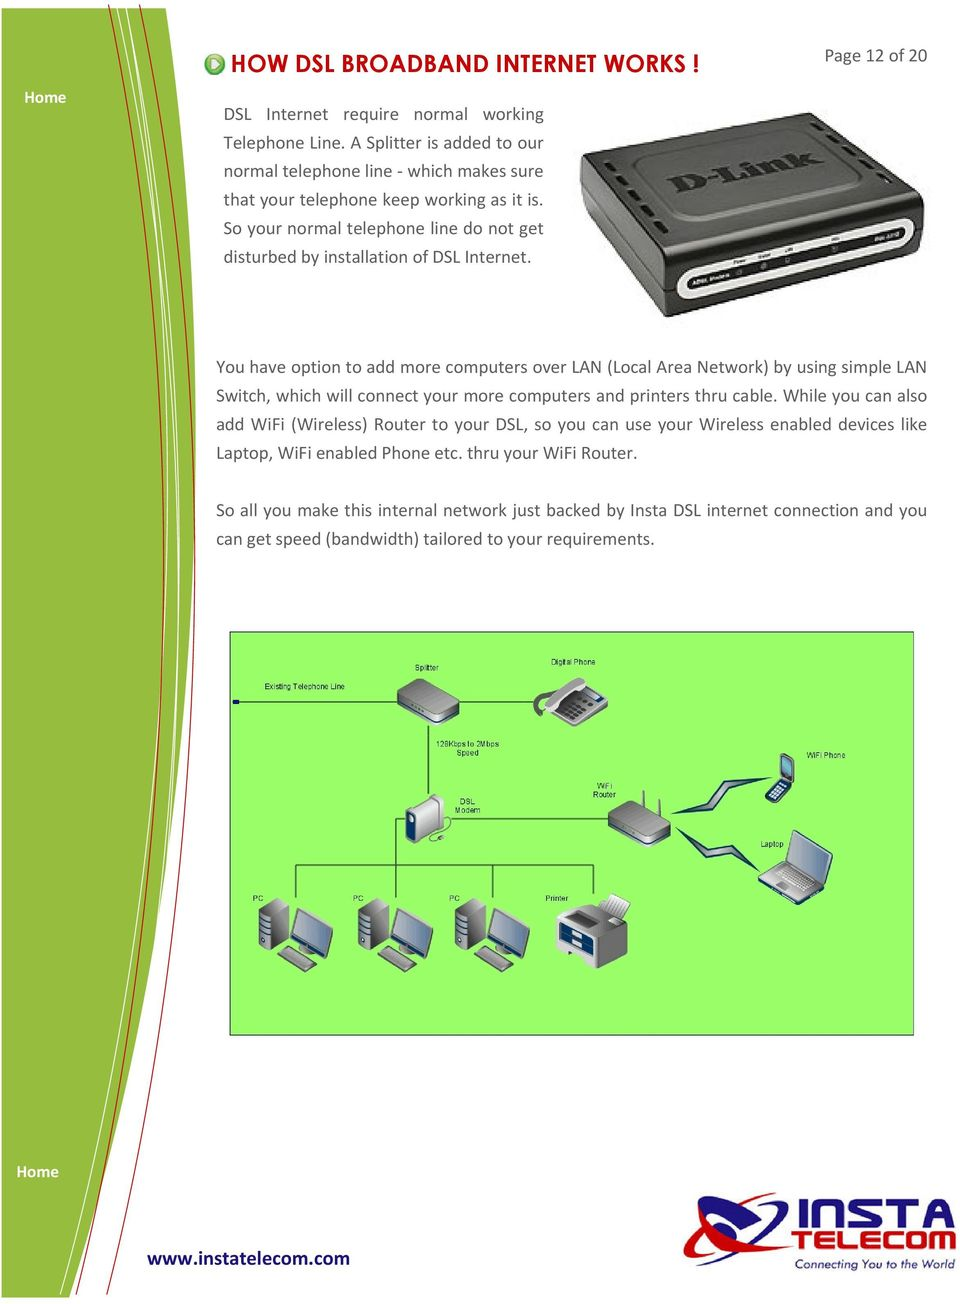 Connecting You To The World Pdf Dsl Phone Line Wiring Diagram Quotes So Your Normal Telephone Do Not Get Disturbed By Installation Of Internet